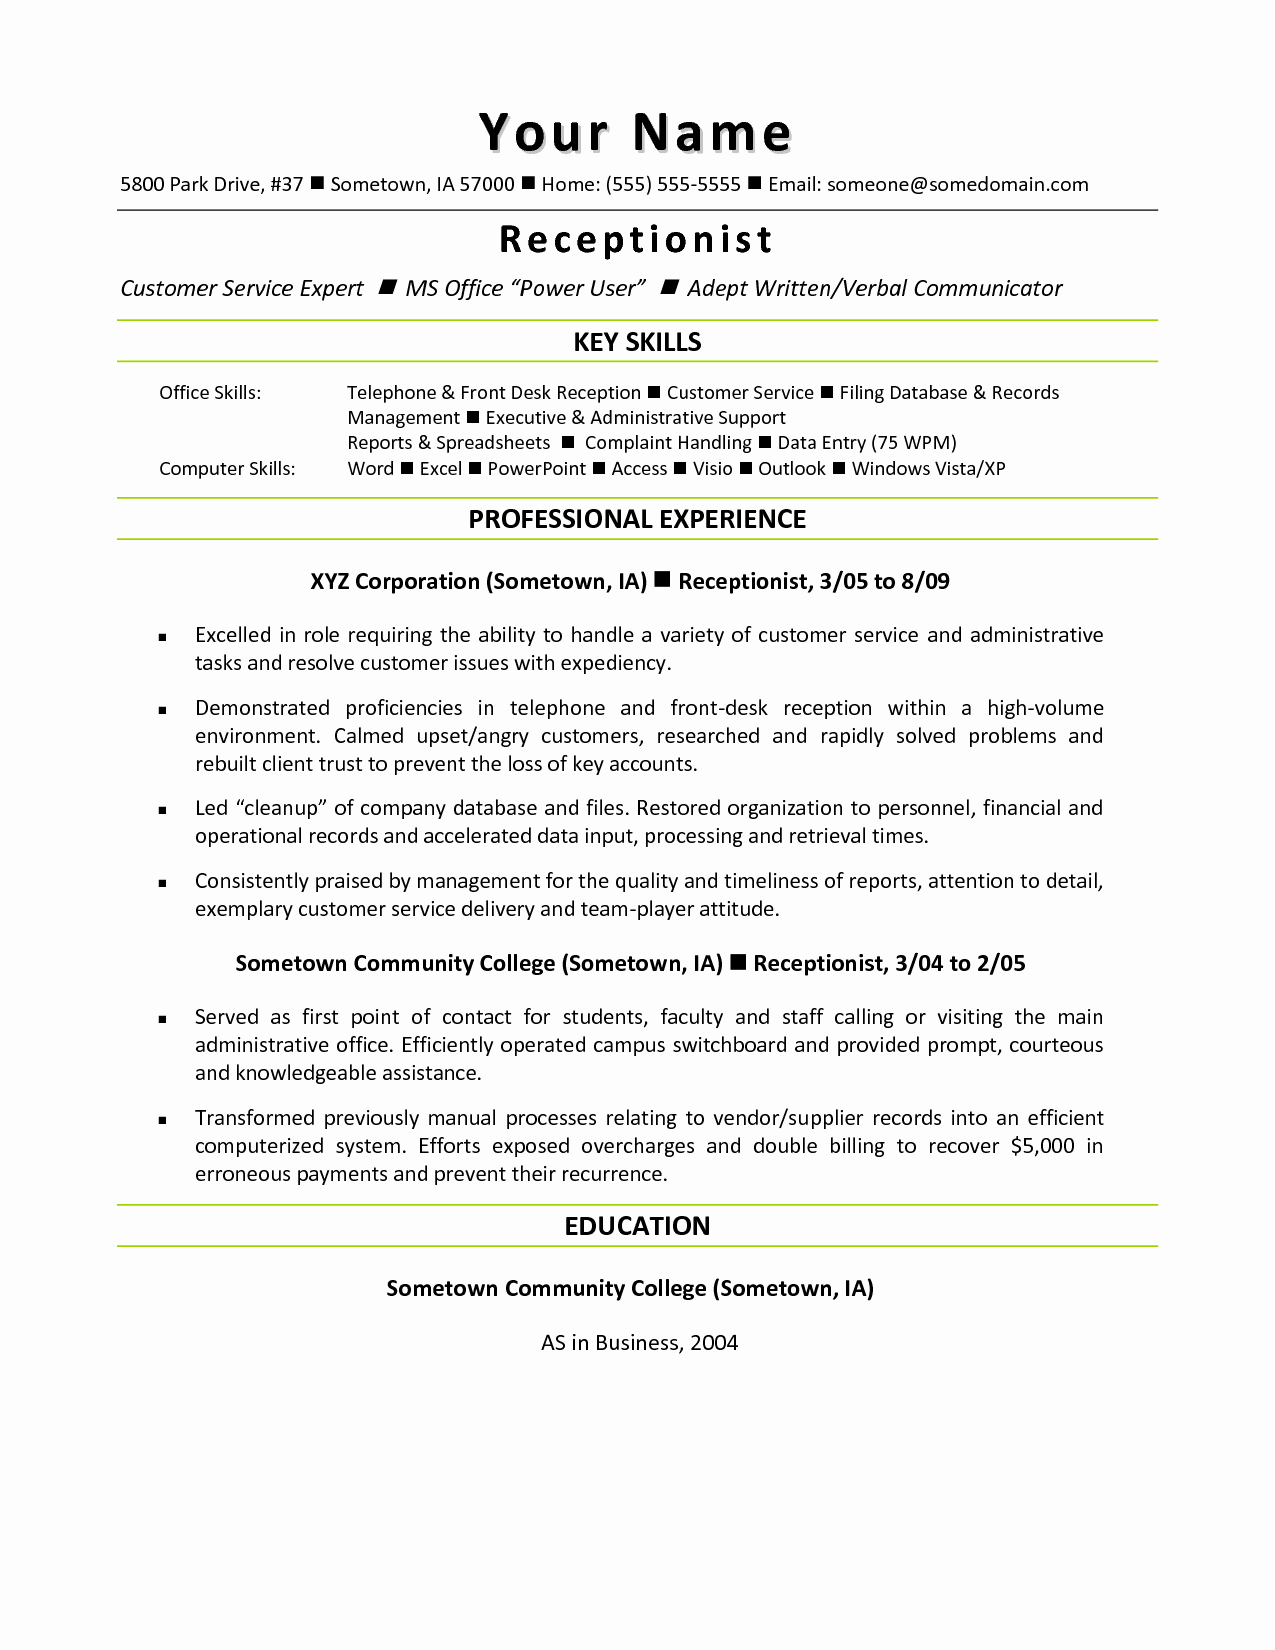 resume cover letter template for medical assistant samples letter